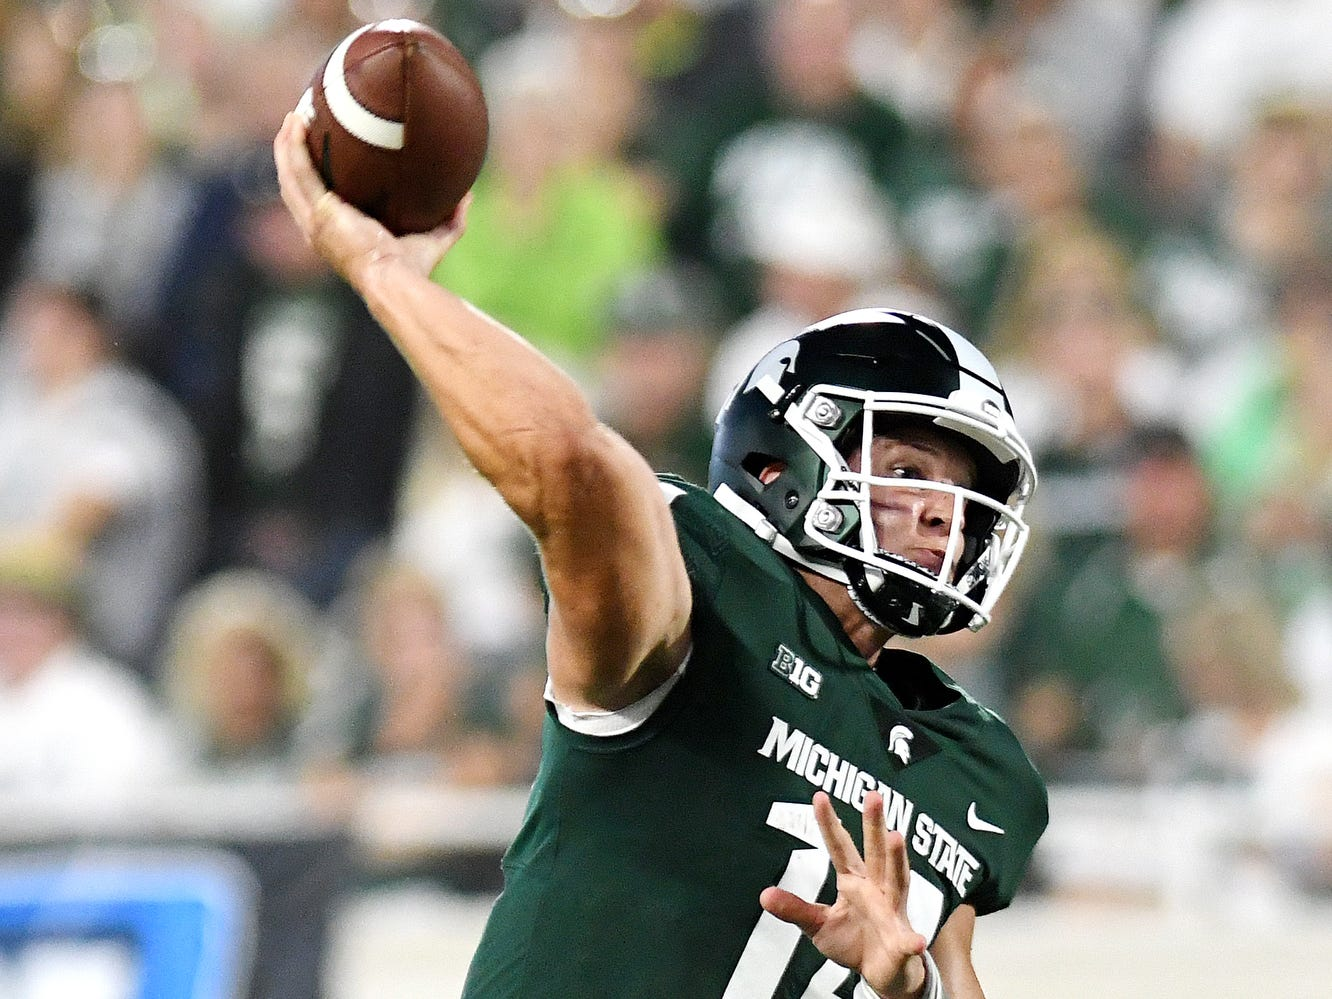 Michigan State's Brian Lewerke throws a pass during the second quarter on Friday, Aug. 31, 2018, at Spartan Stadium in East Lansing.